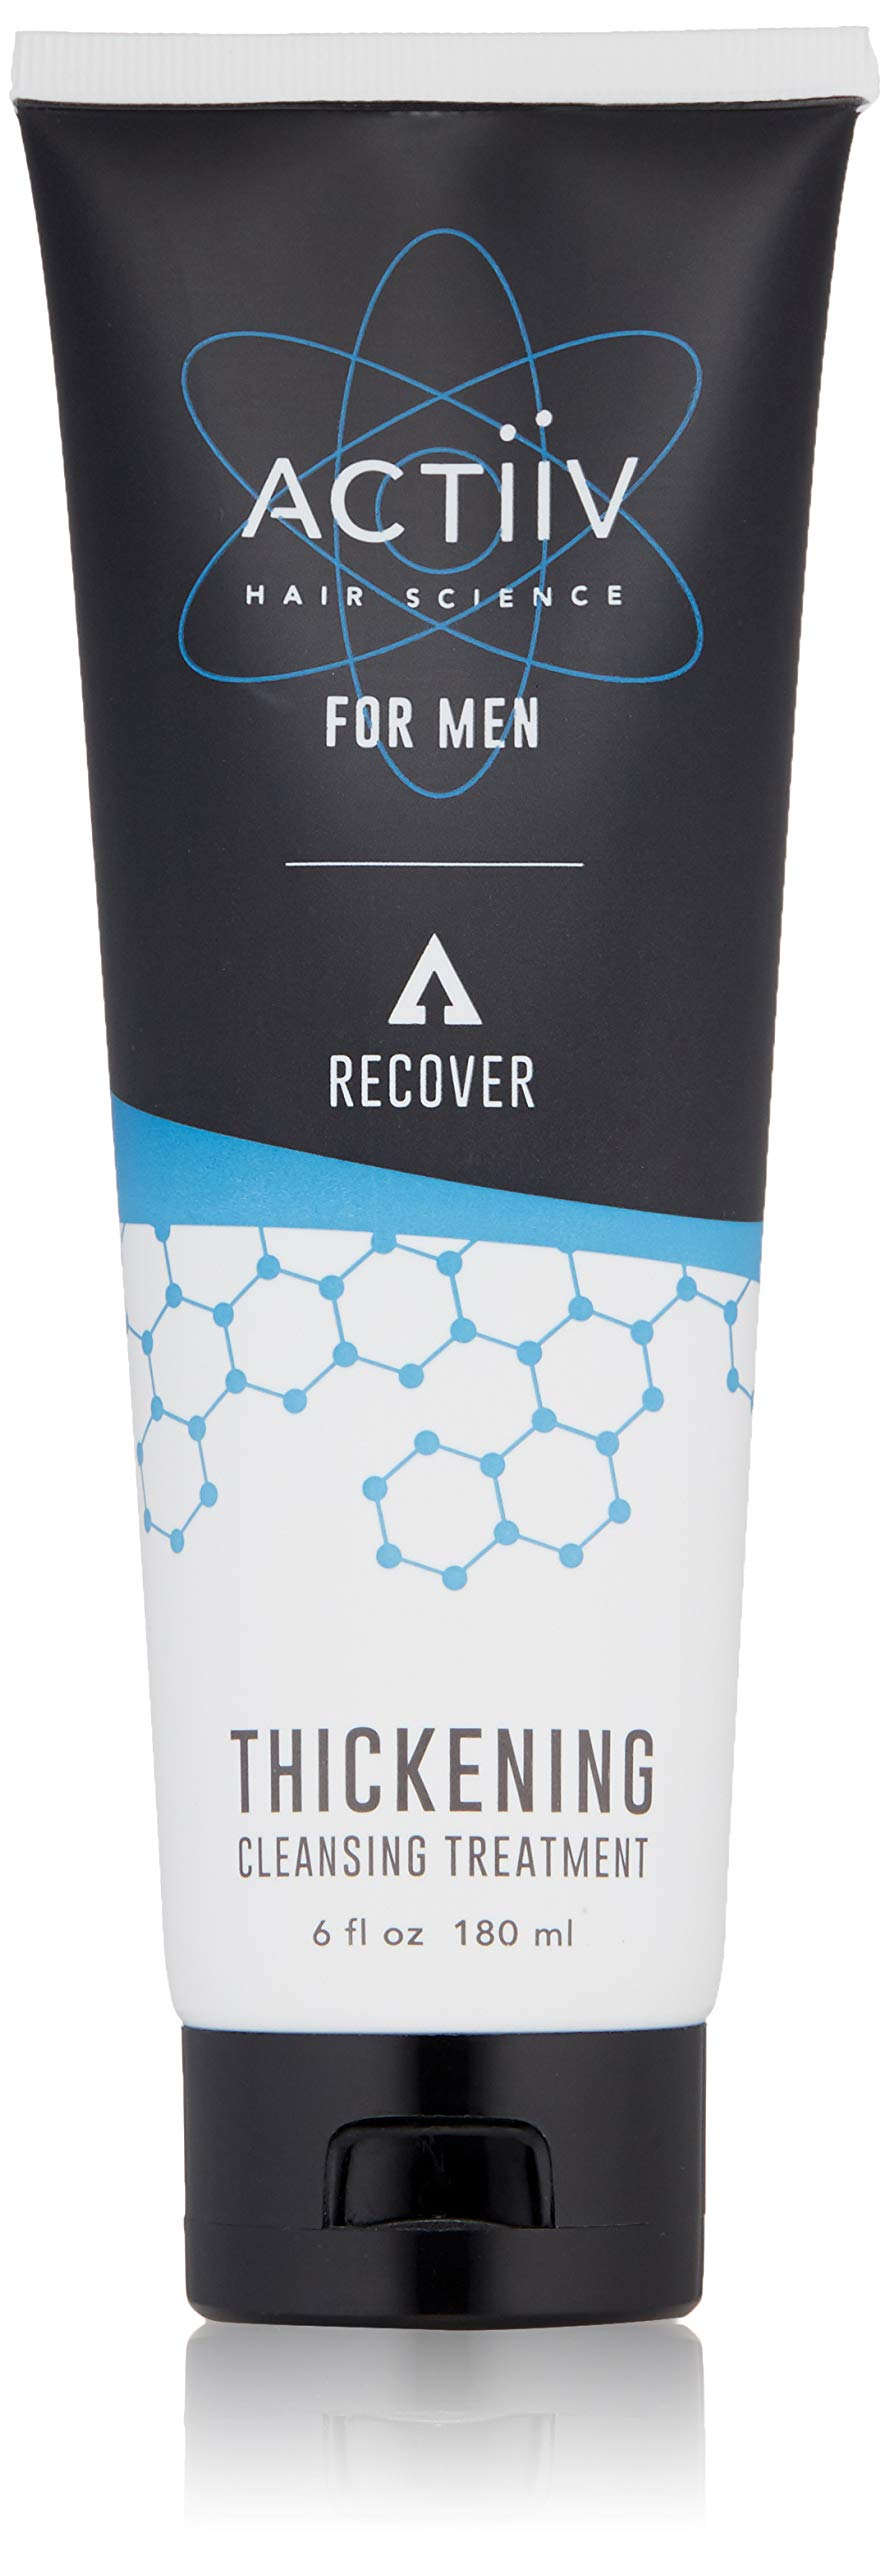 ACTIIV Recover Thickening Cleansing Treatment for Men 6 Oz by ACTIIV